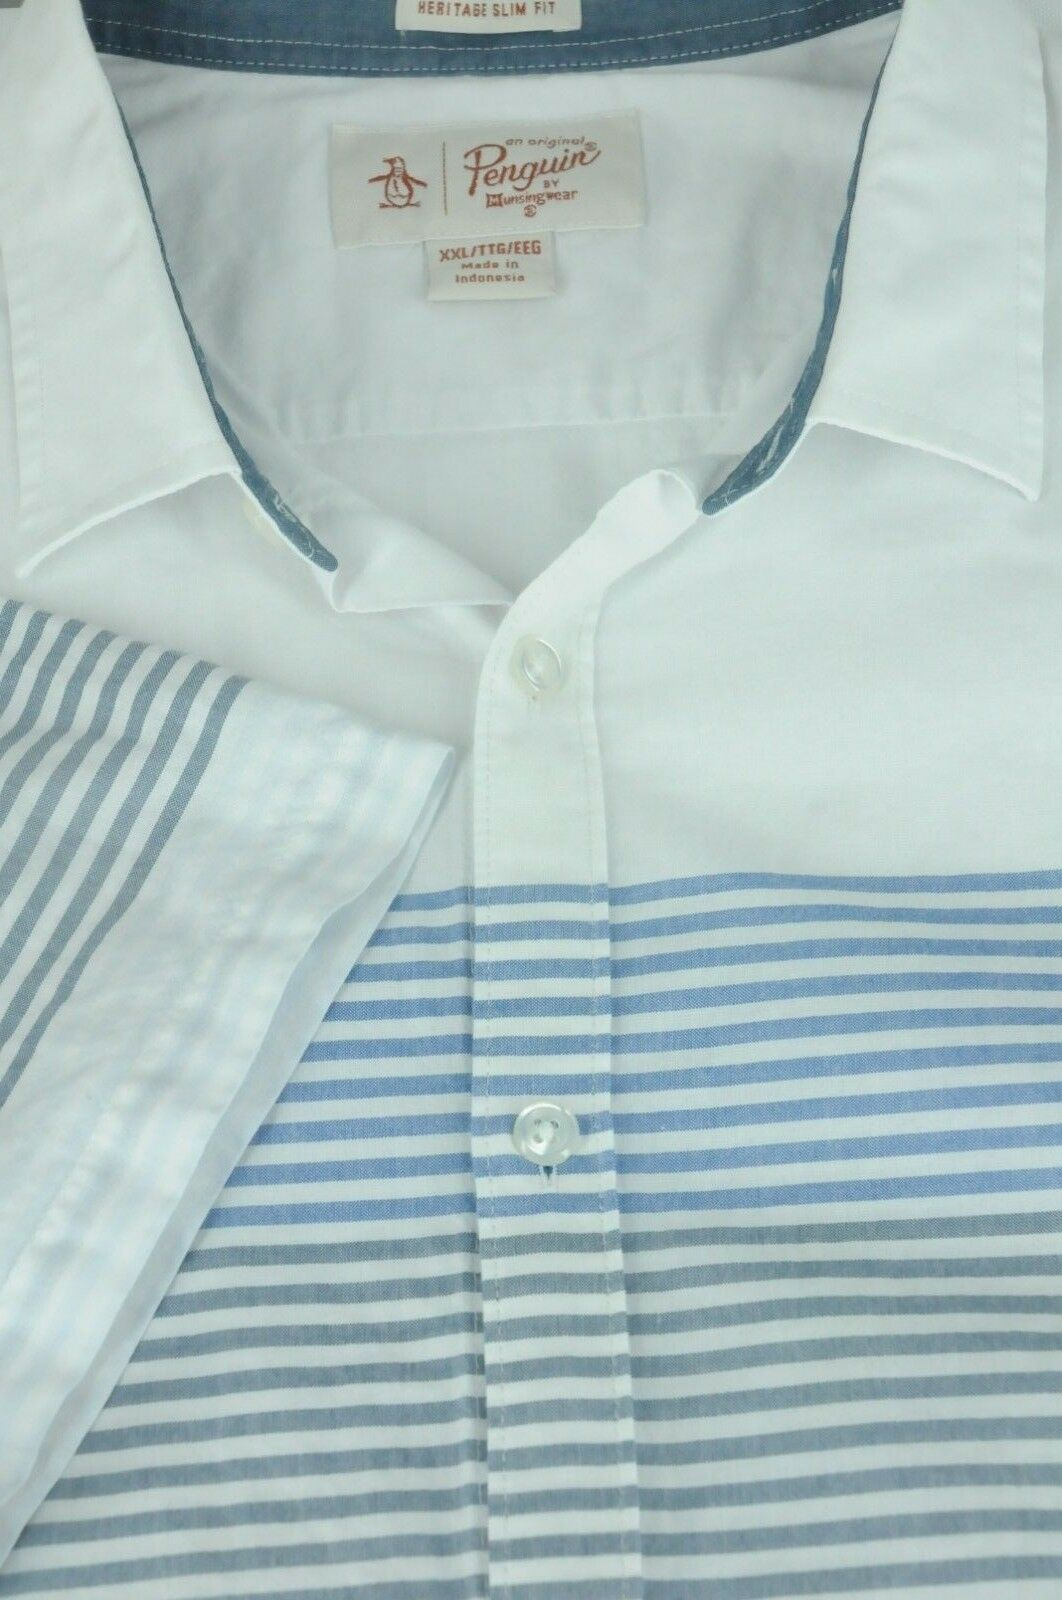 28a8bdb8 Men's White With bluee Striped Slim Fit Casual Shirt XXL 2XL Cotton Penguin  ncifsr2459-Casual Shirts & Tops